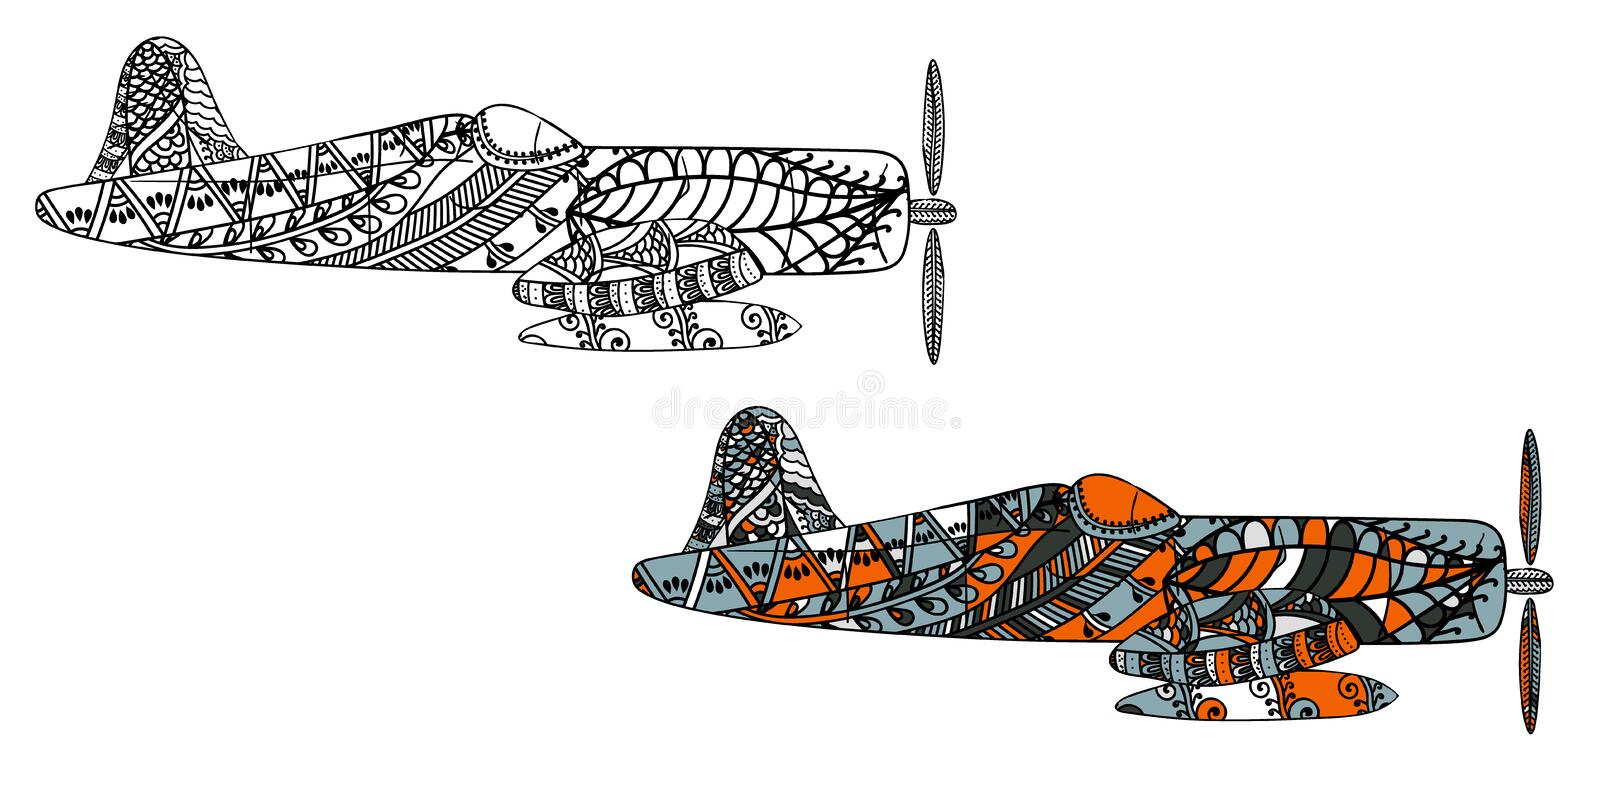 Airplane With Ethnic Doodle Pattern. Zentangle Inspired Pattern For ...